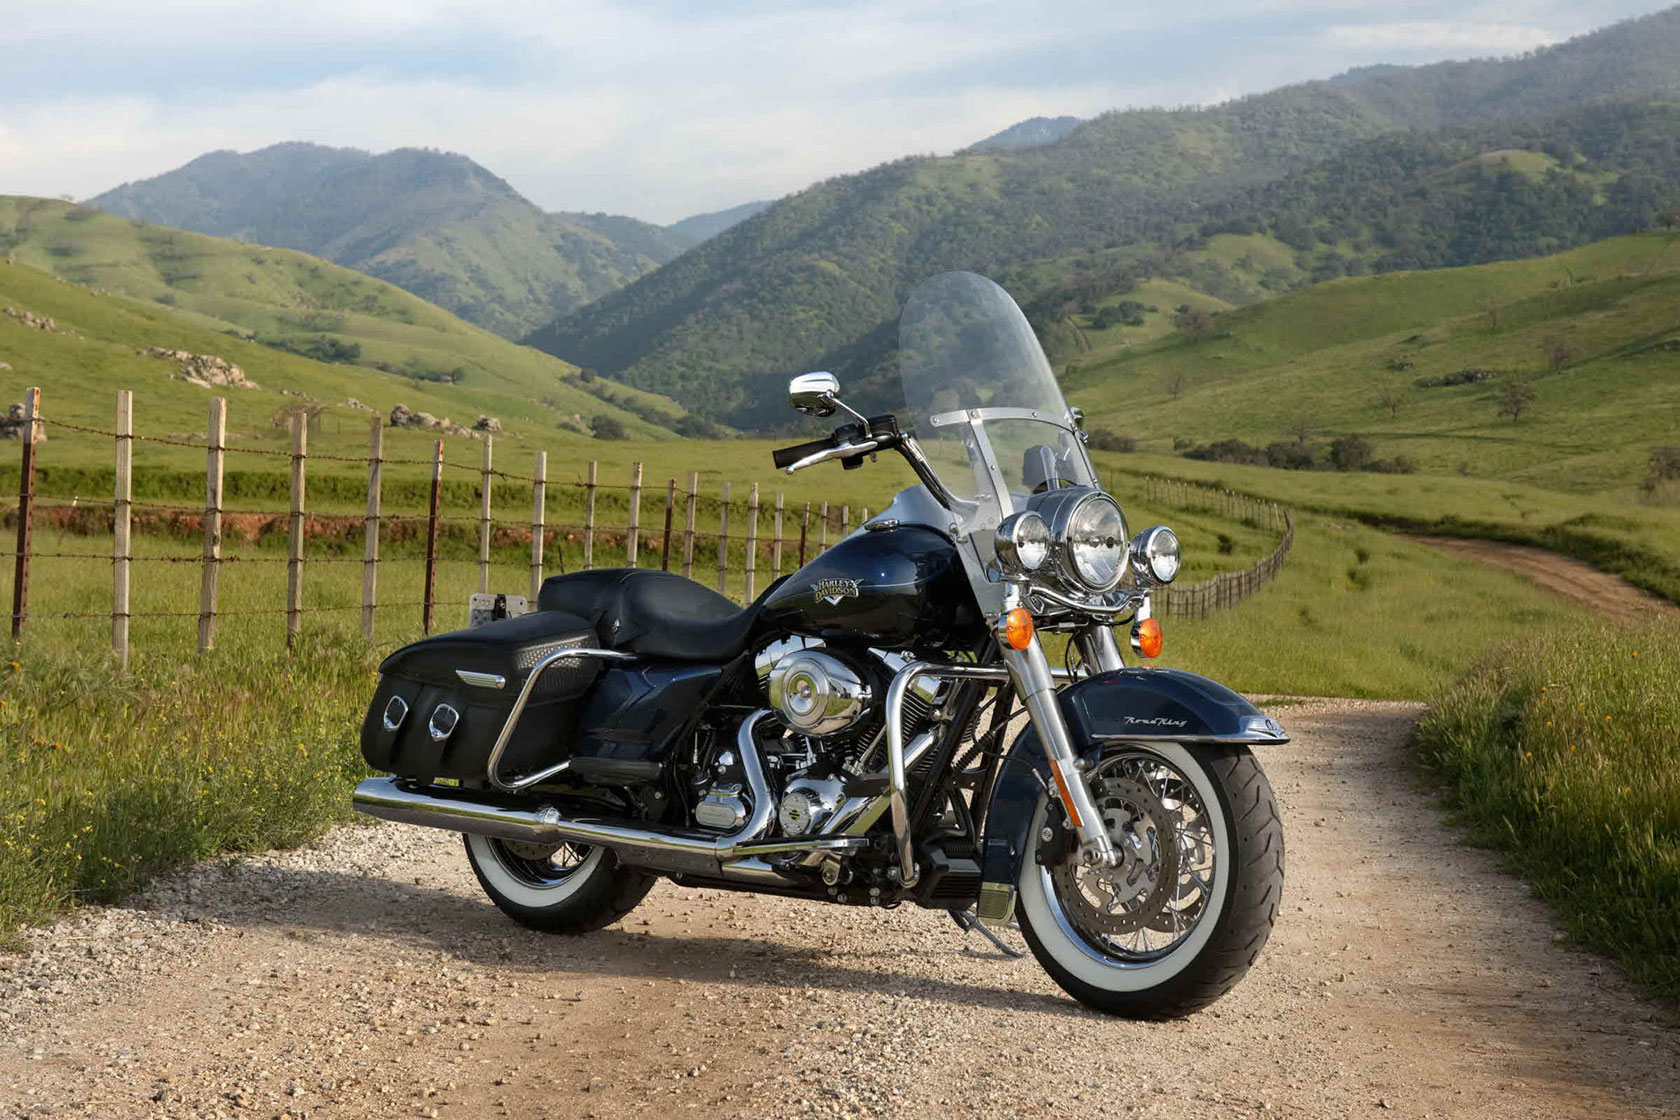 2014 Harley Davidson Wiring Diagram Will Be A Thing Ultra Classic Road King Specs 2011 2012 Radio Street Glide